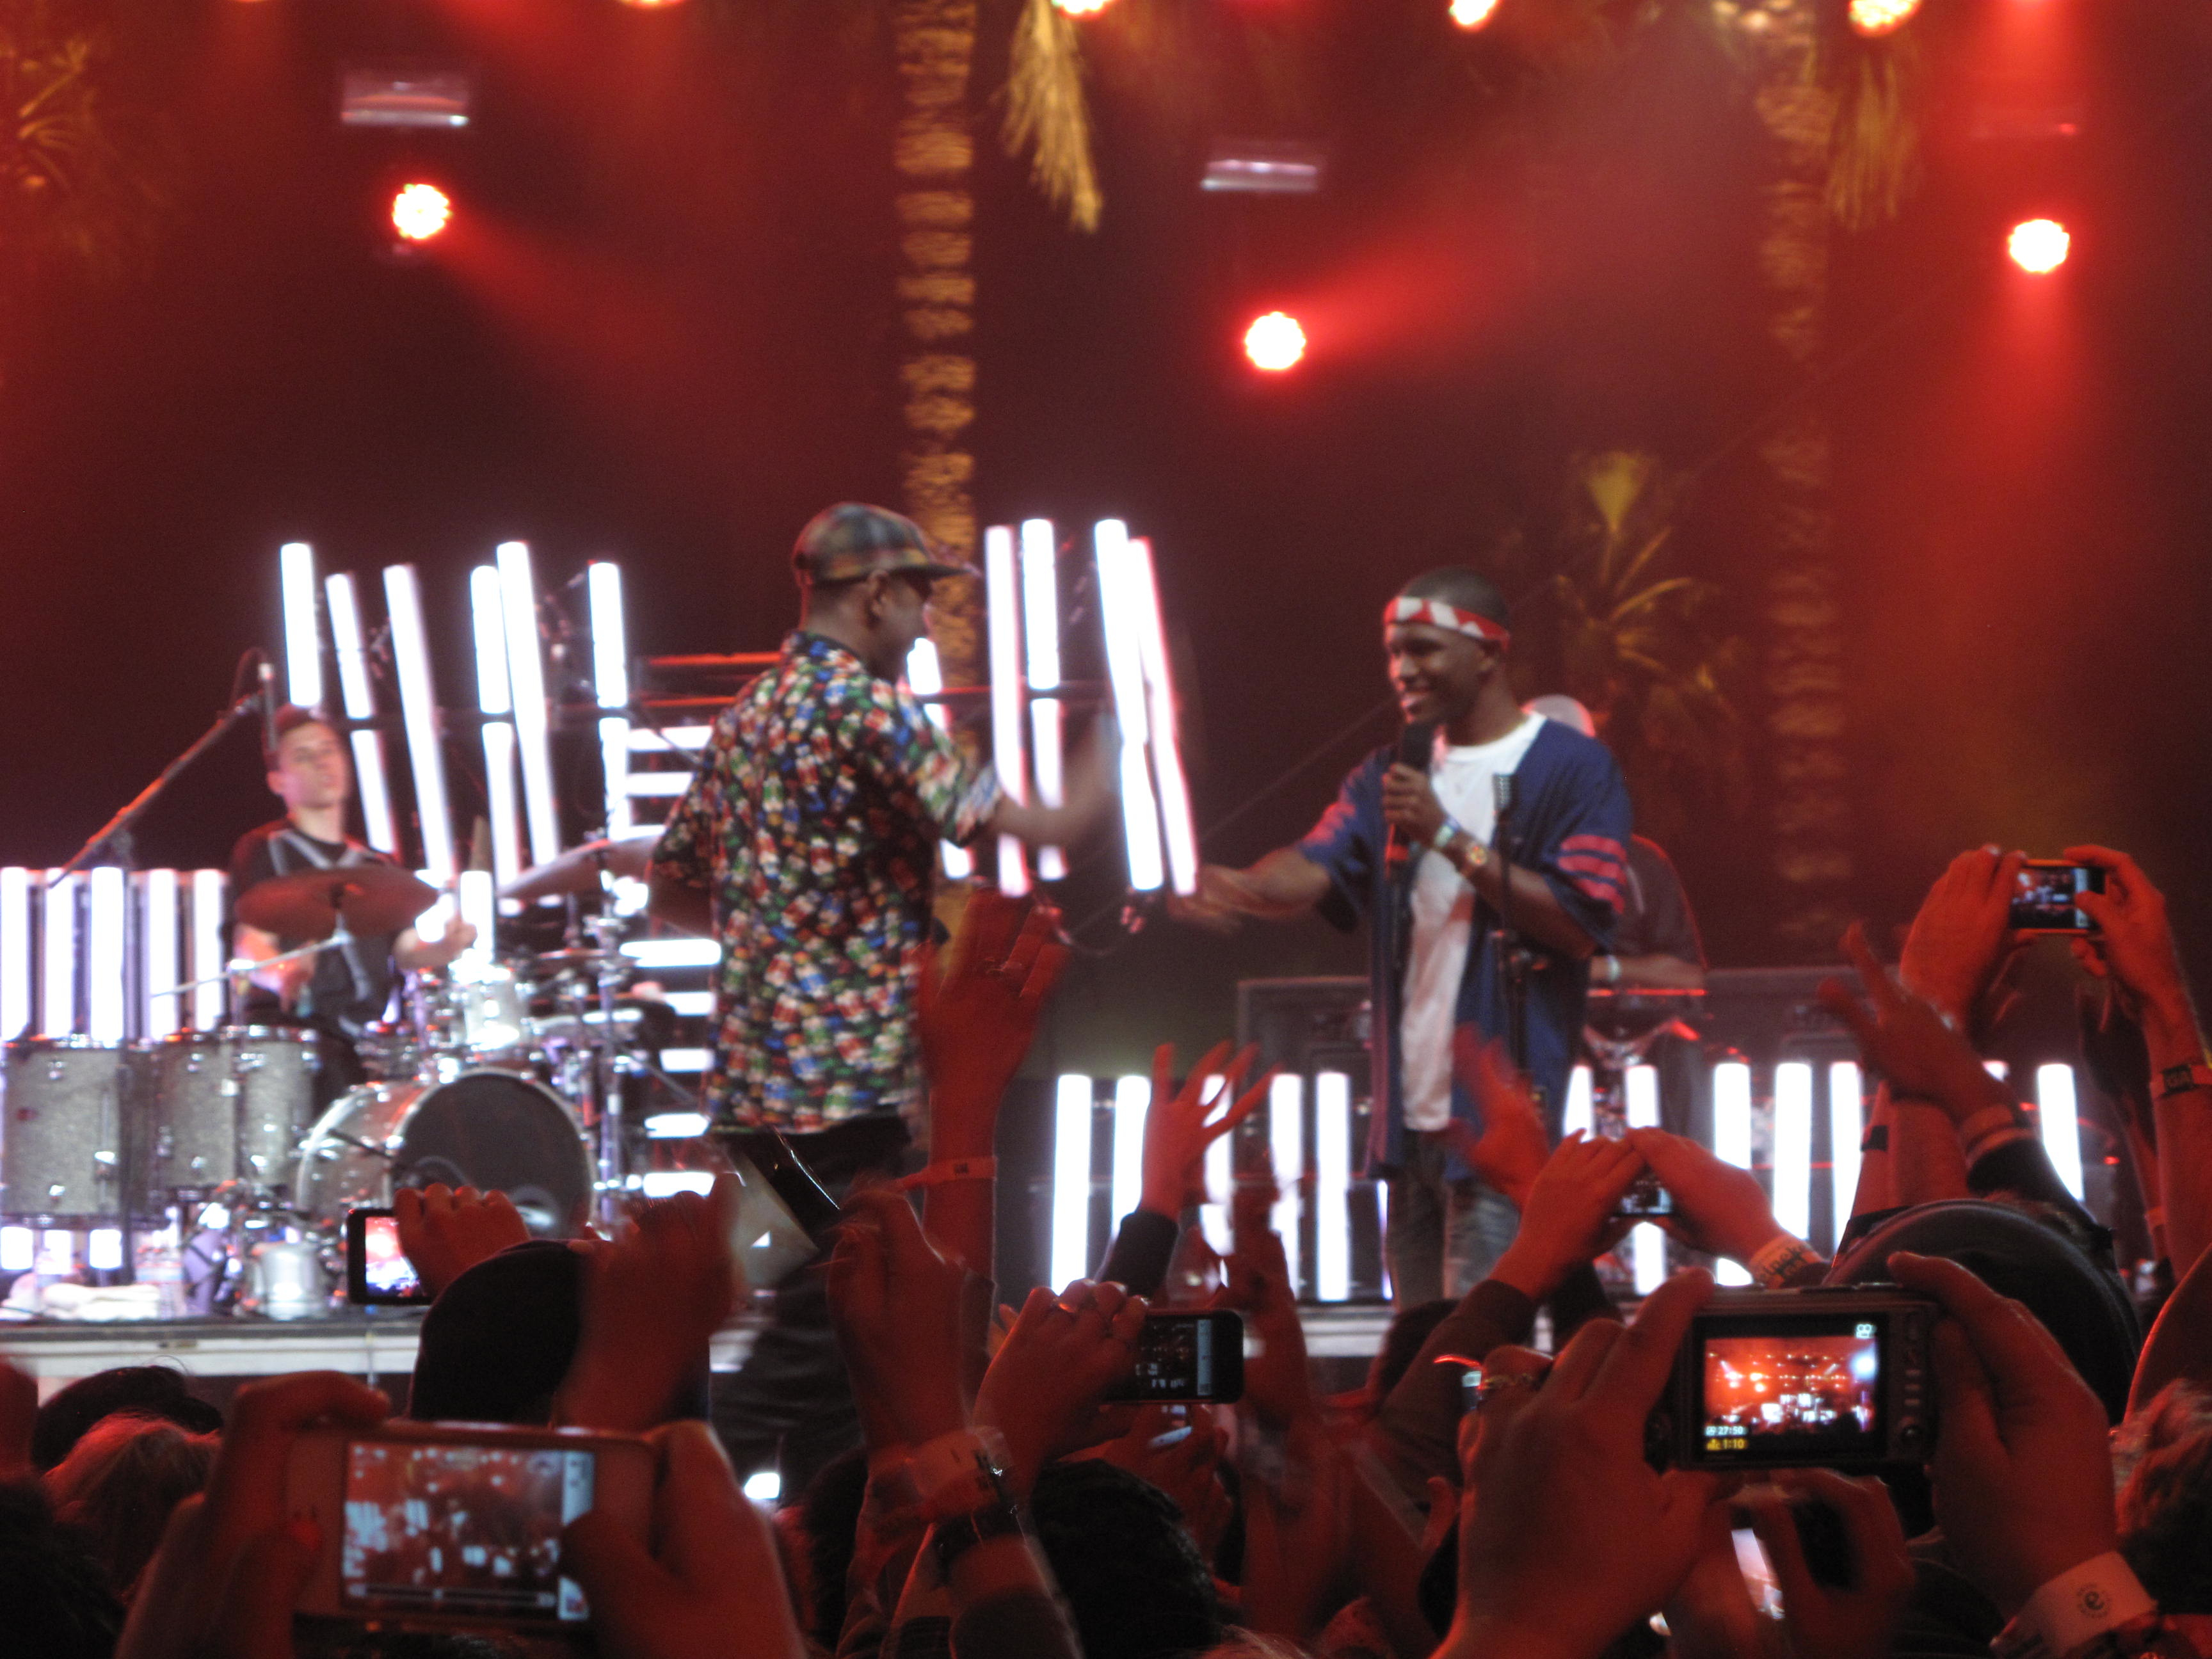 bf191c012 File:Tyler the Creator and Frank Ocean Coachella 2012.jpg ...